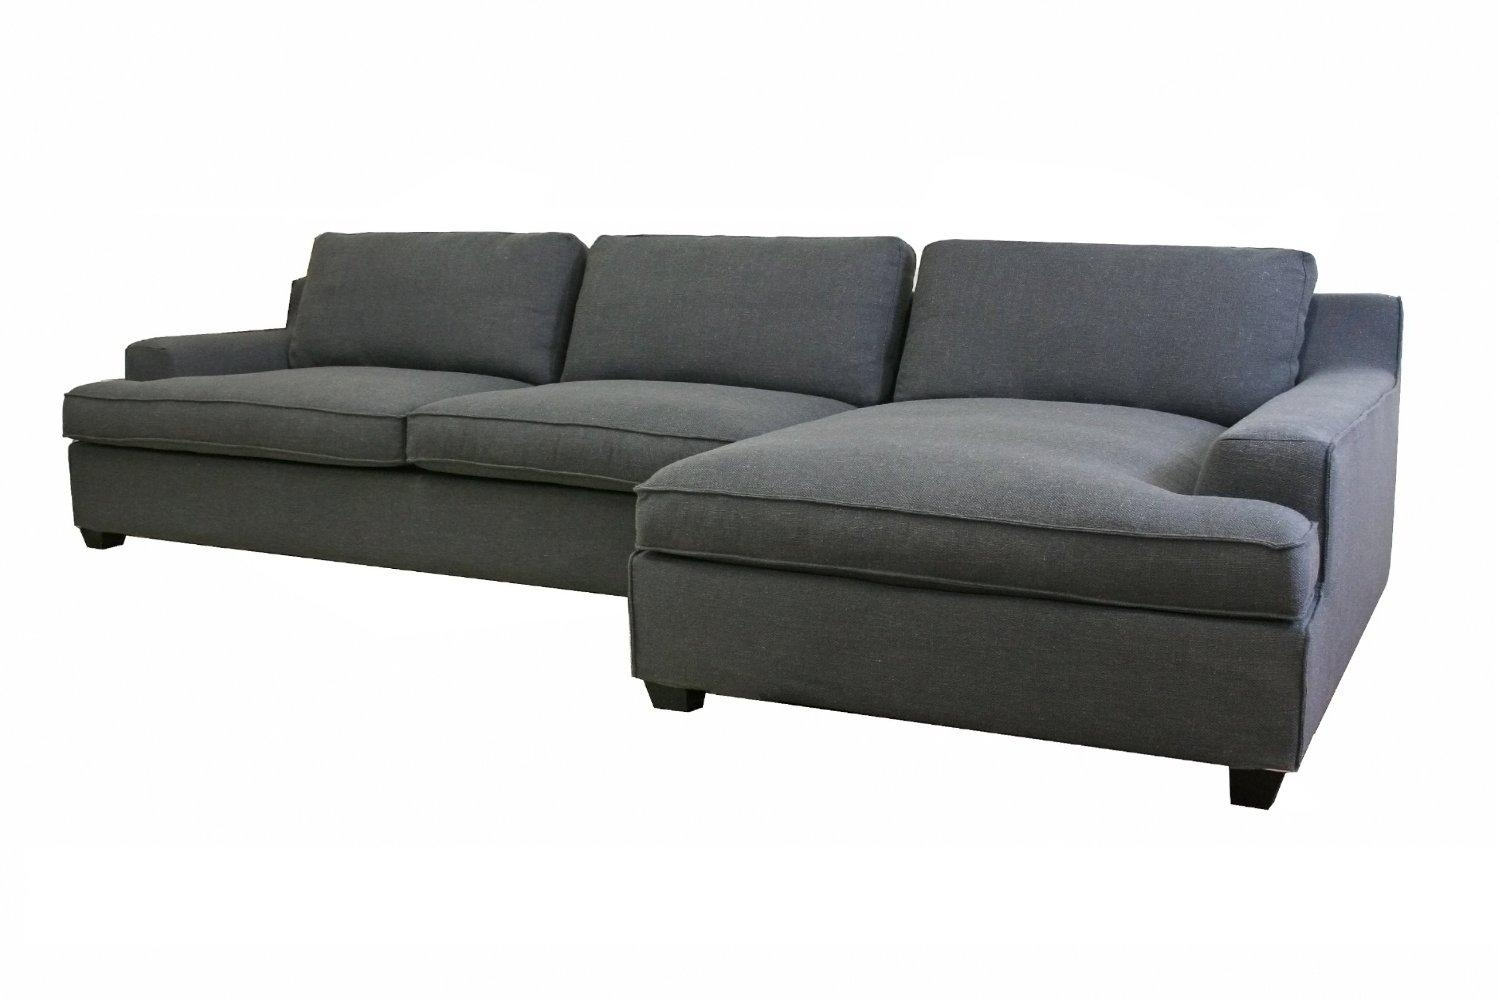 20 top sofas with chaise longue sofa ideas for Sofas chaise longue pequenos